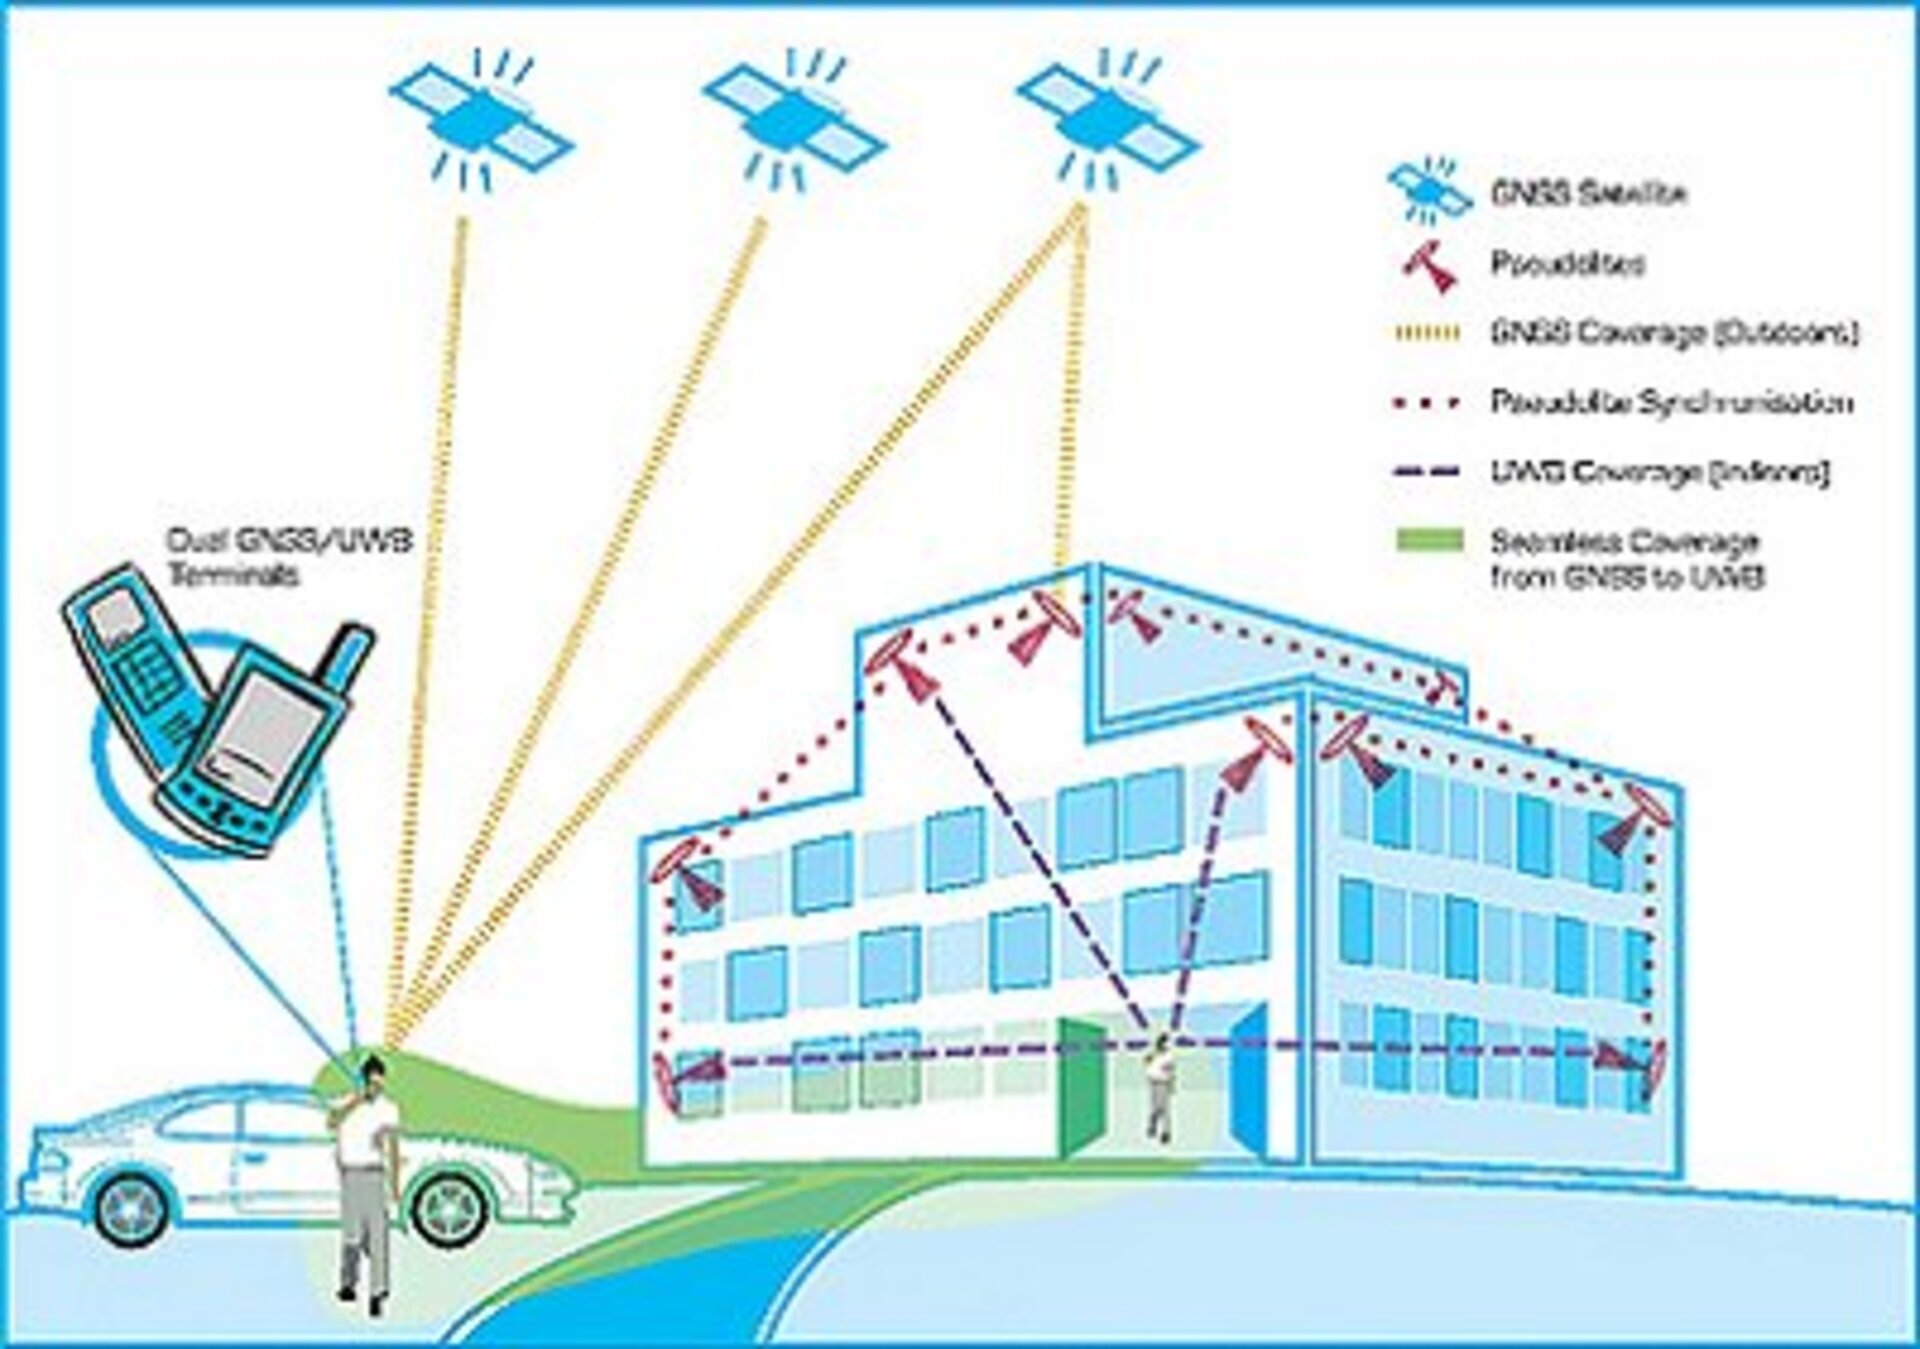 ESA - In-building Positioning based on Ultra-WideBand (UWB) signals